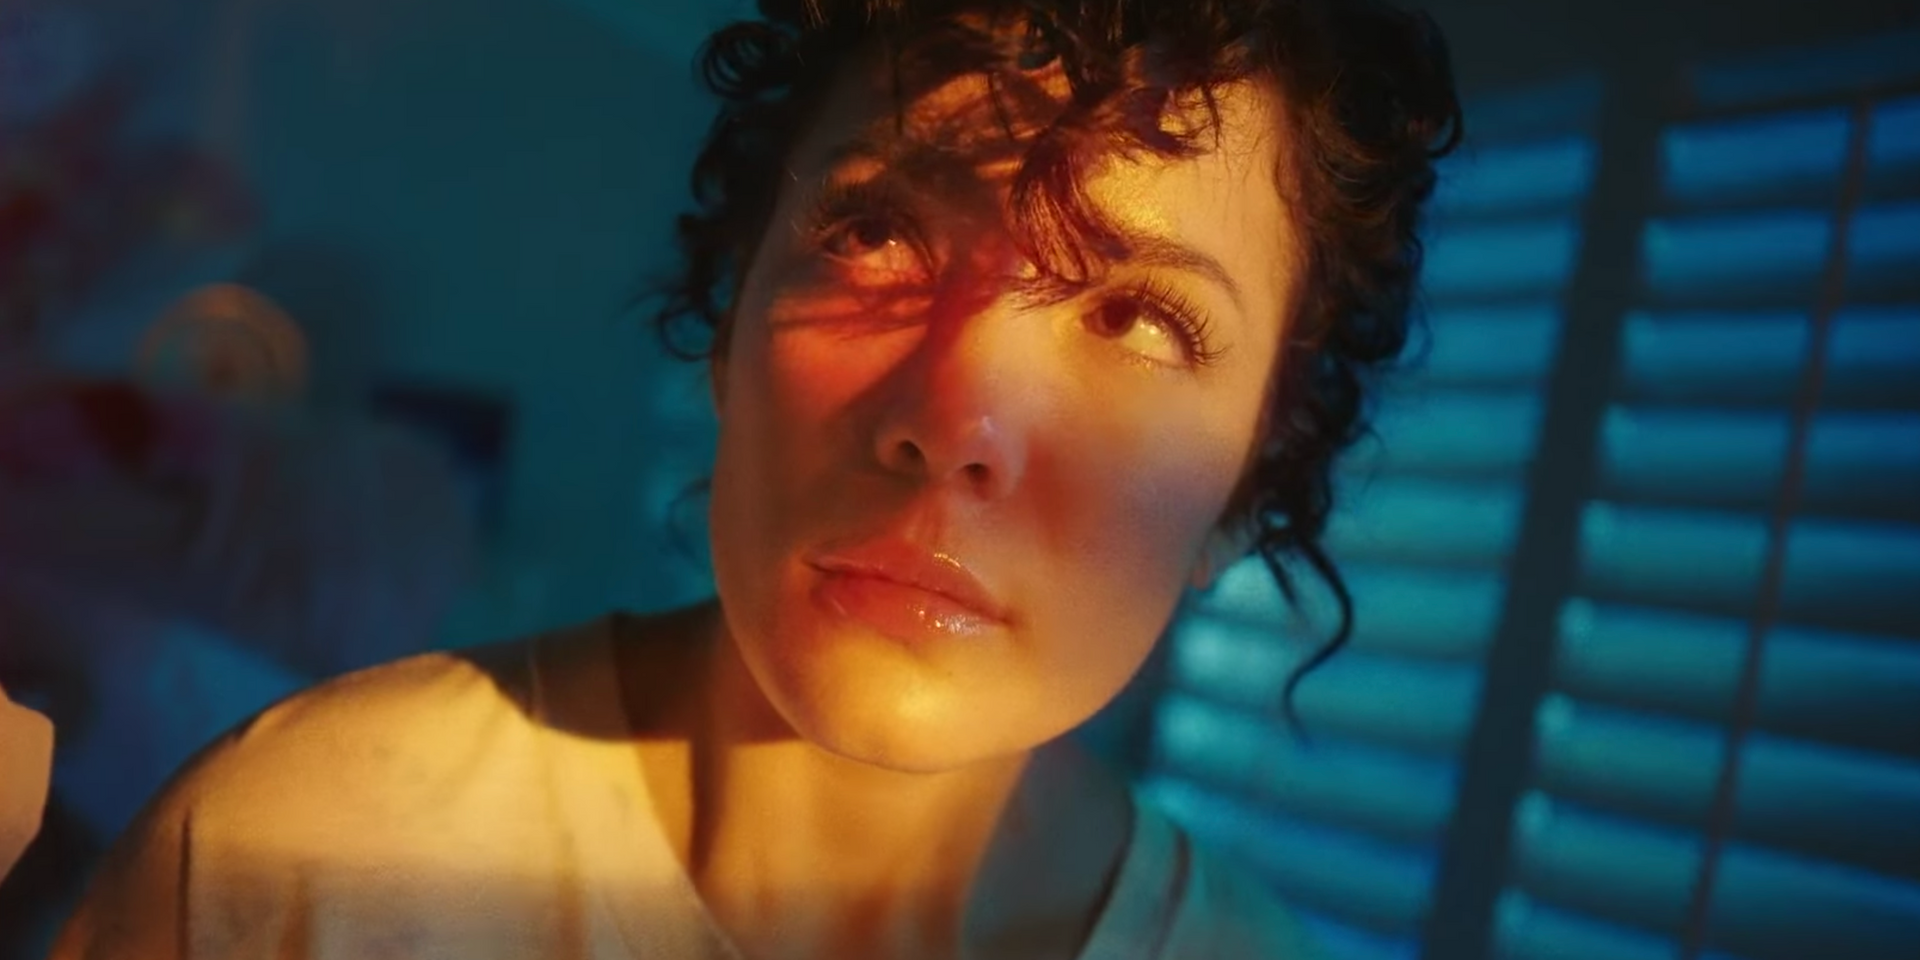 Halsey unveils whimsical new video for 'Graveyard'